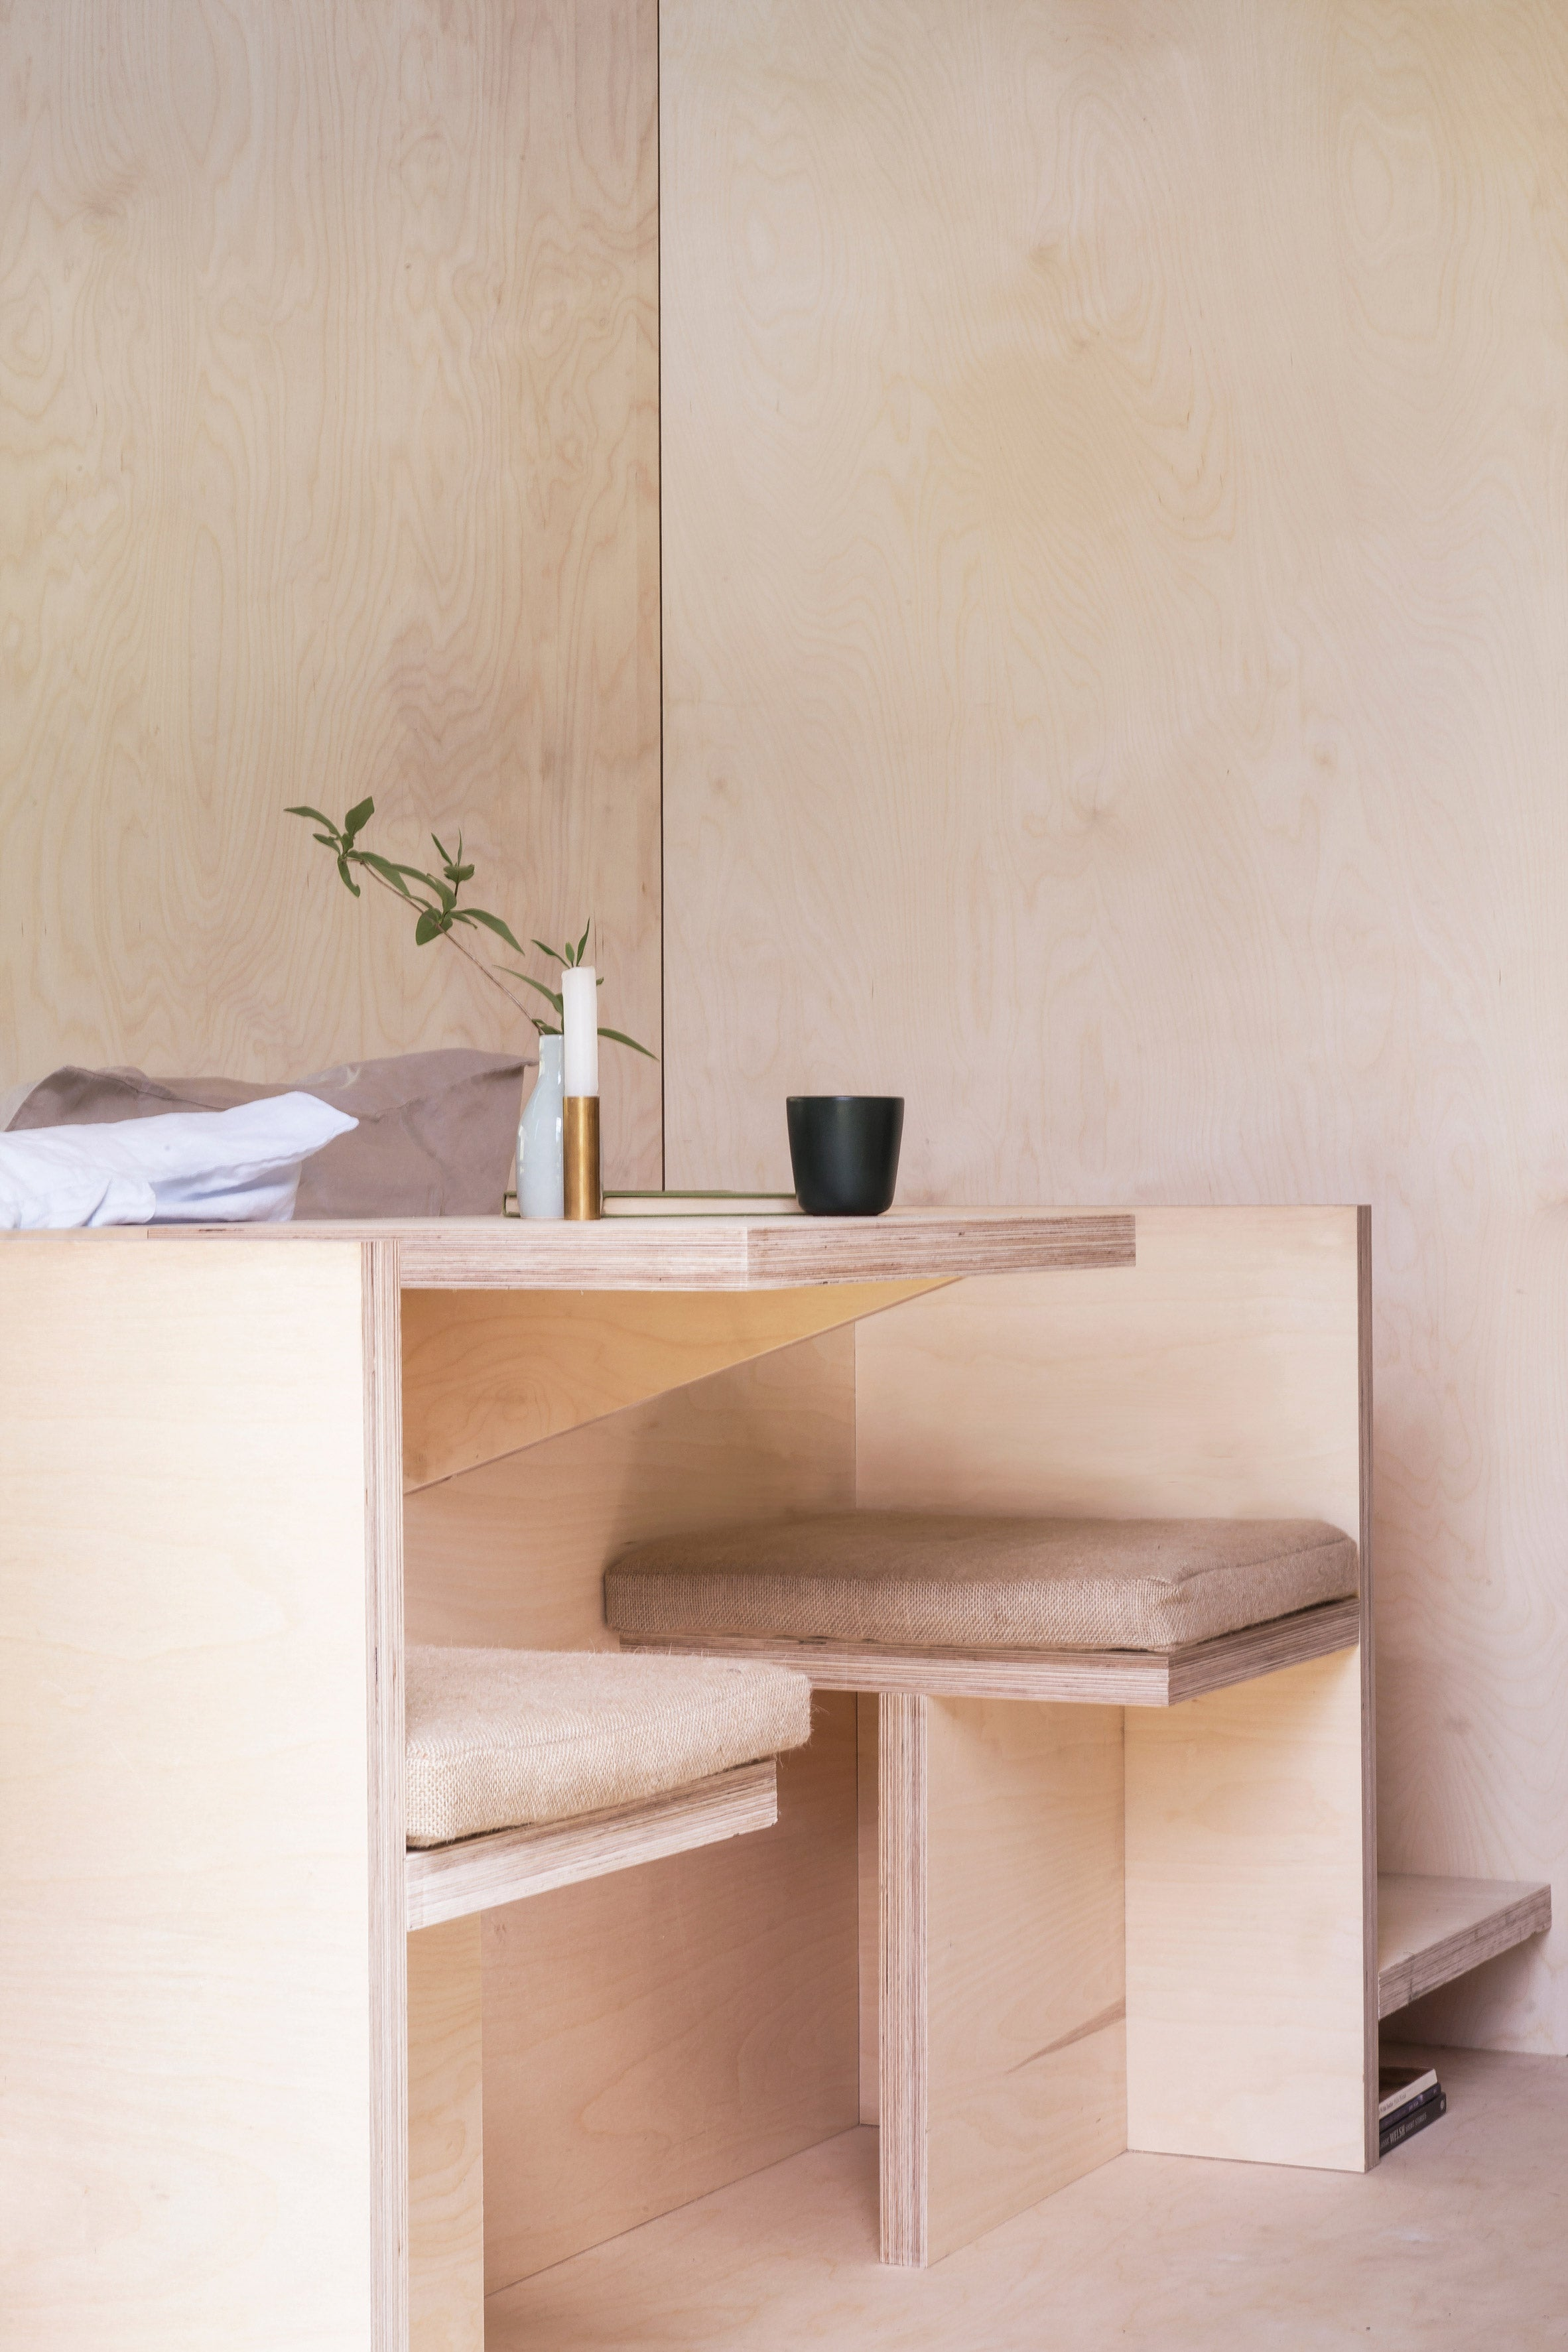 + Modern Bedroom Storage and Minimalist Furniture to simplify your everyday - SLATE CABIN BY TRIAS